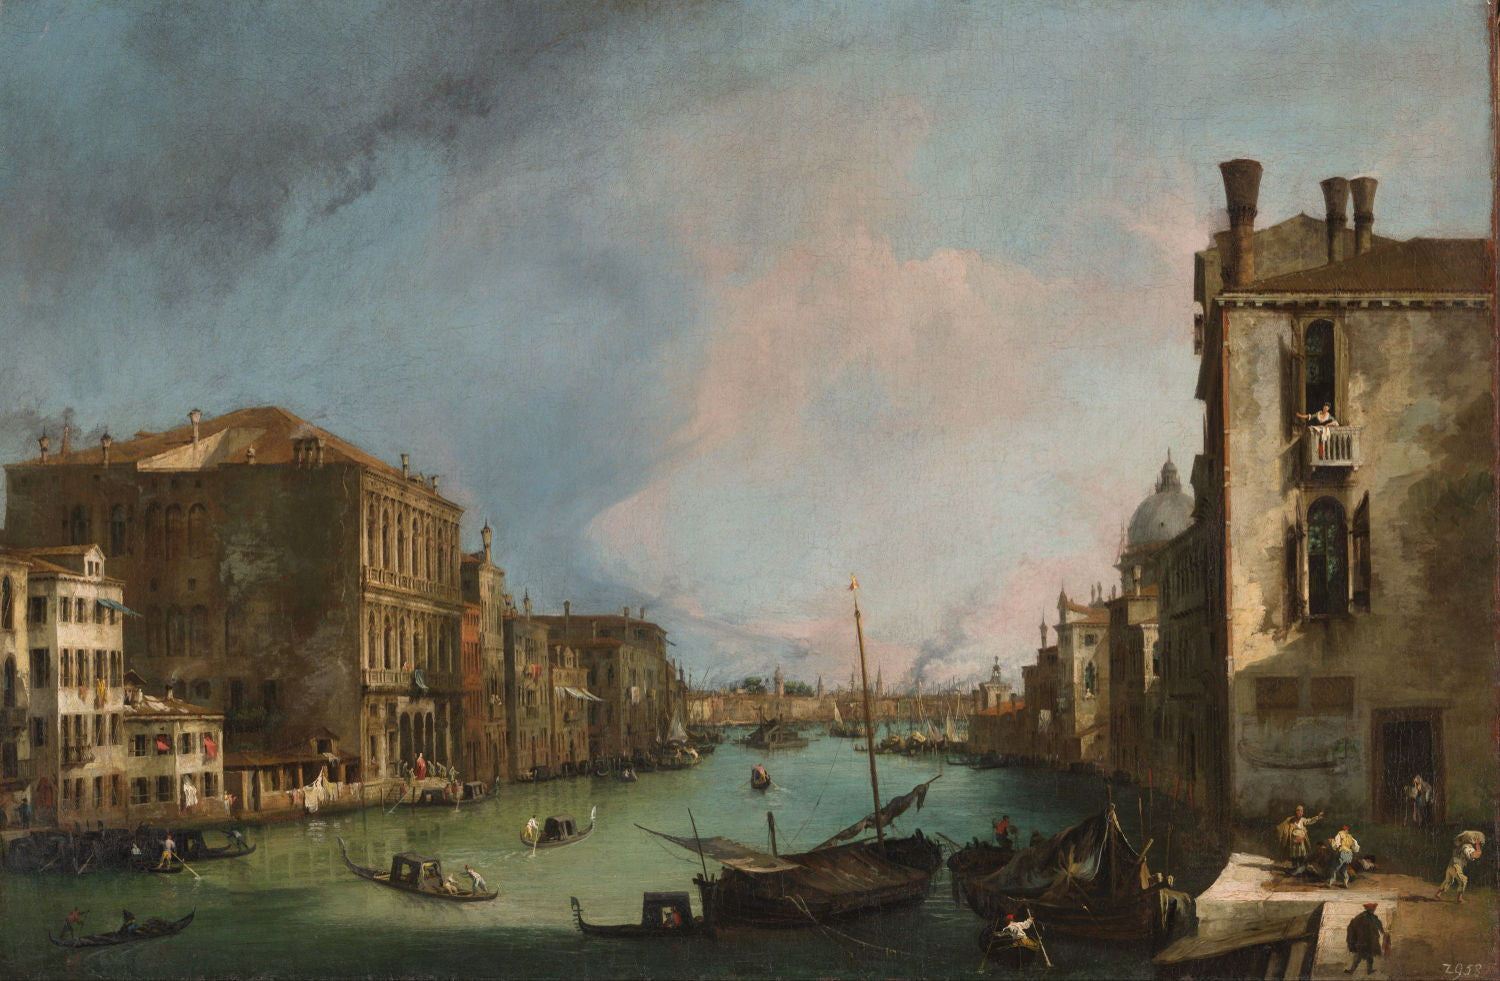 Canaletto | Buy Posters, Frames, Canvas, Digital Art & Large Size Prints Of The Famous Old Master's Artworks